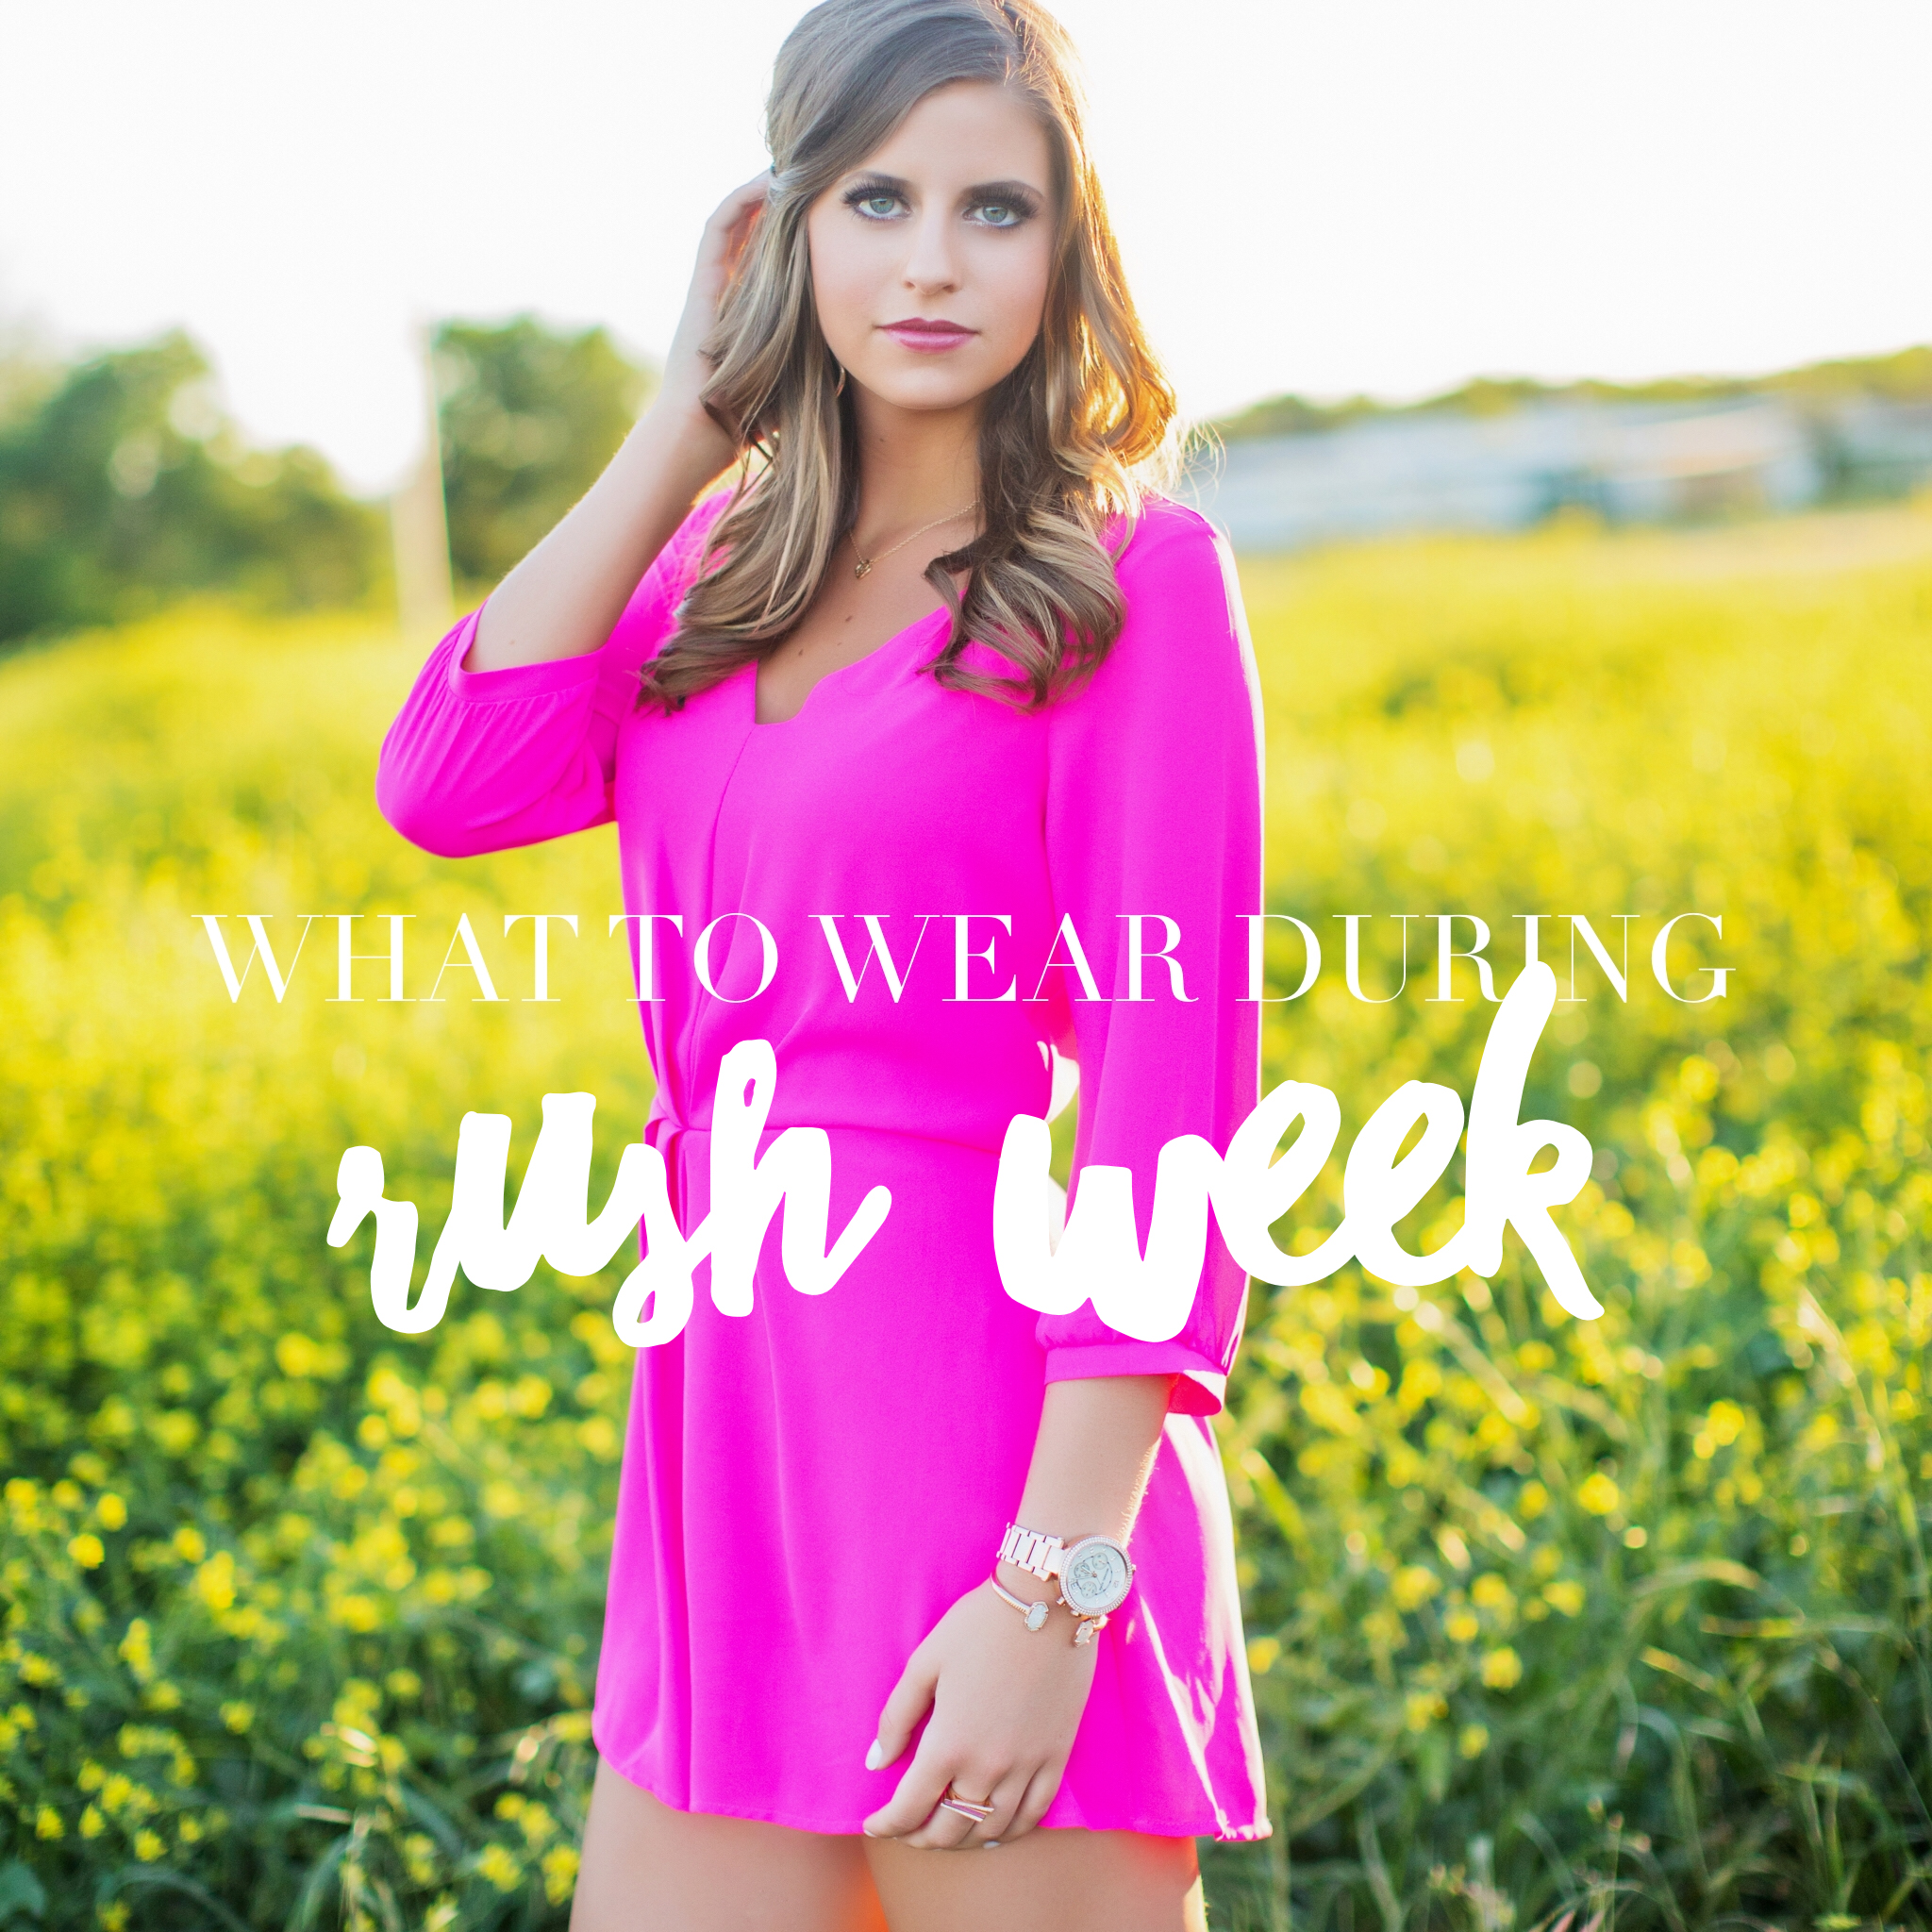 What to Wear During Sorority Rush Week